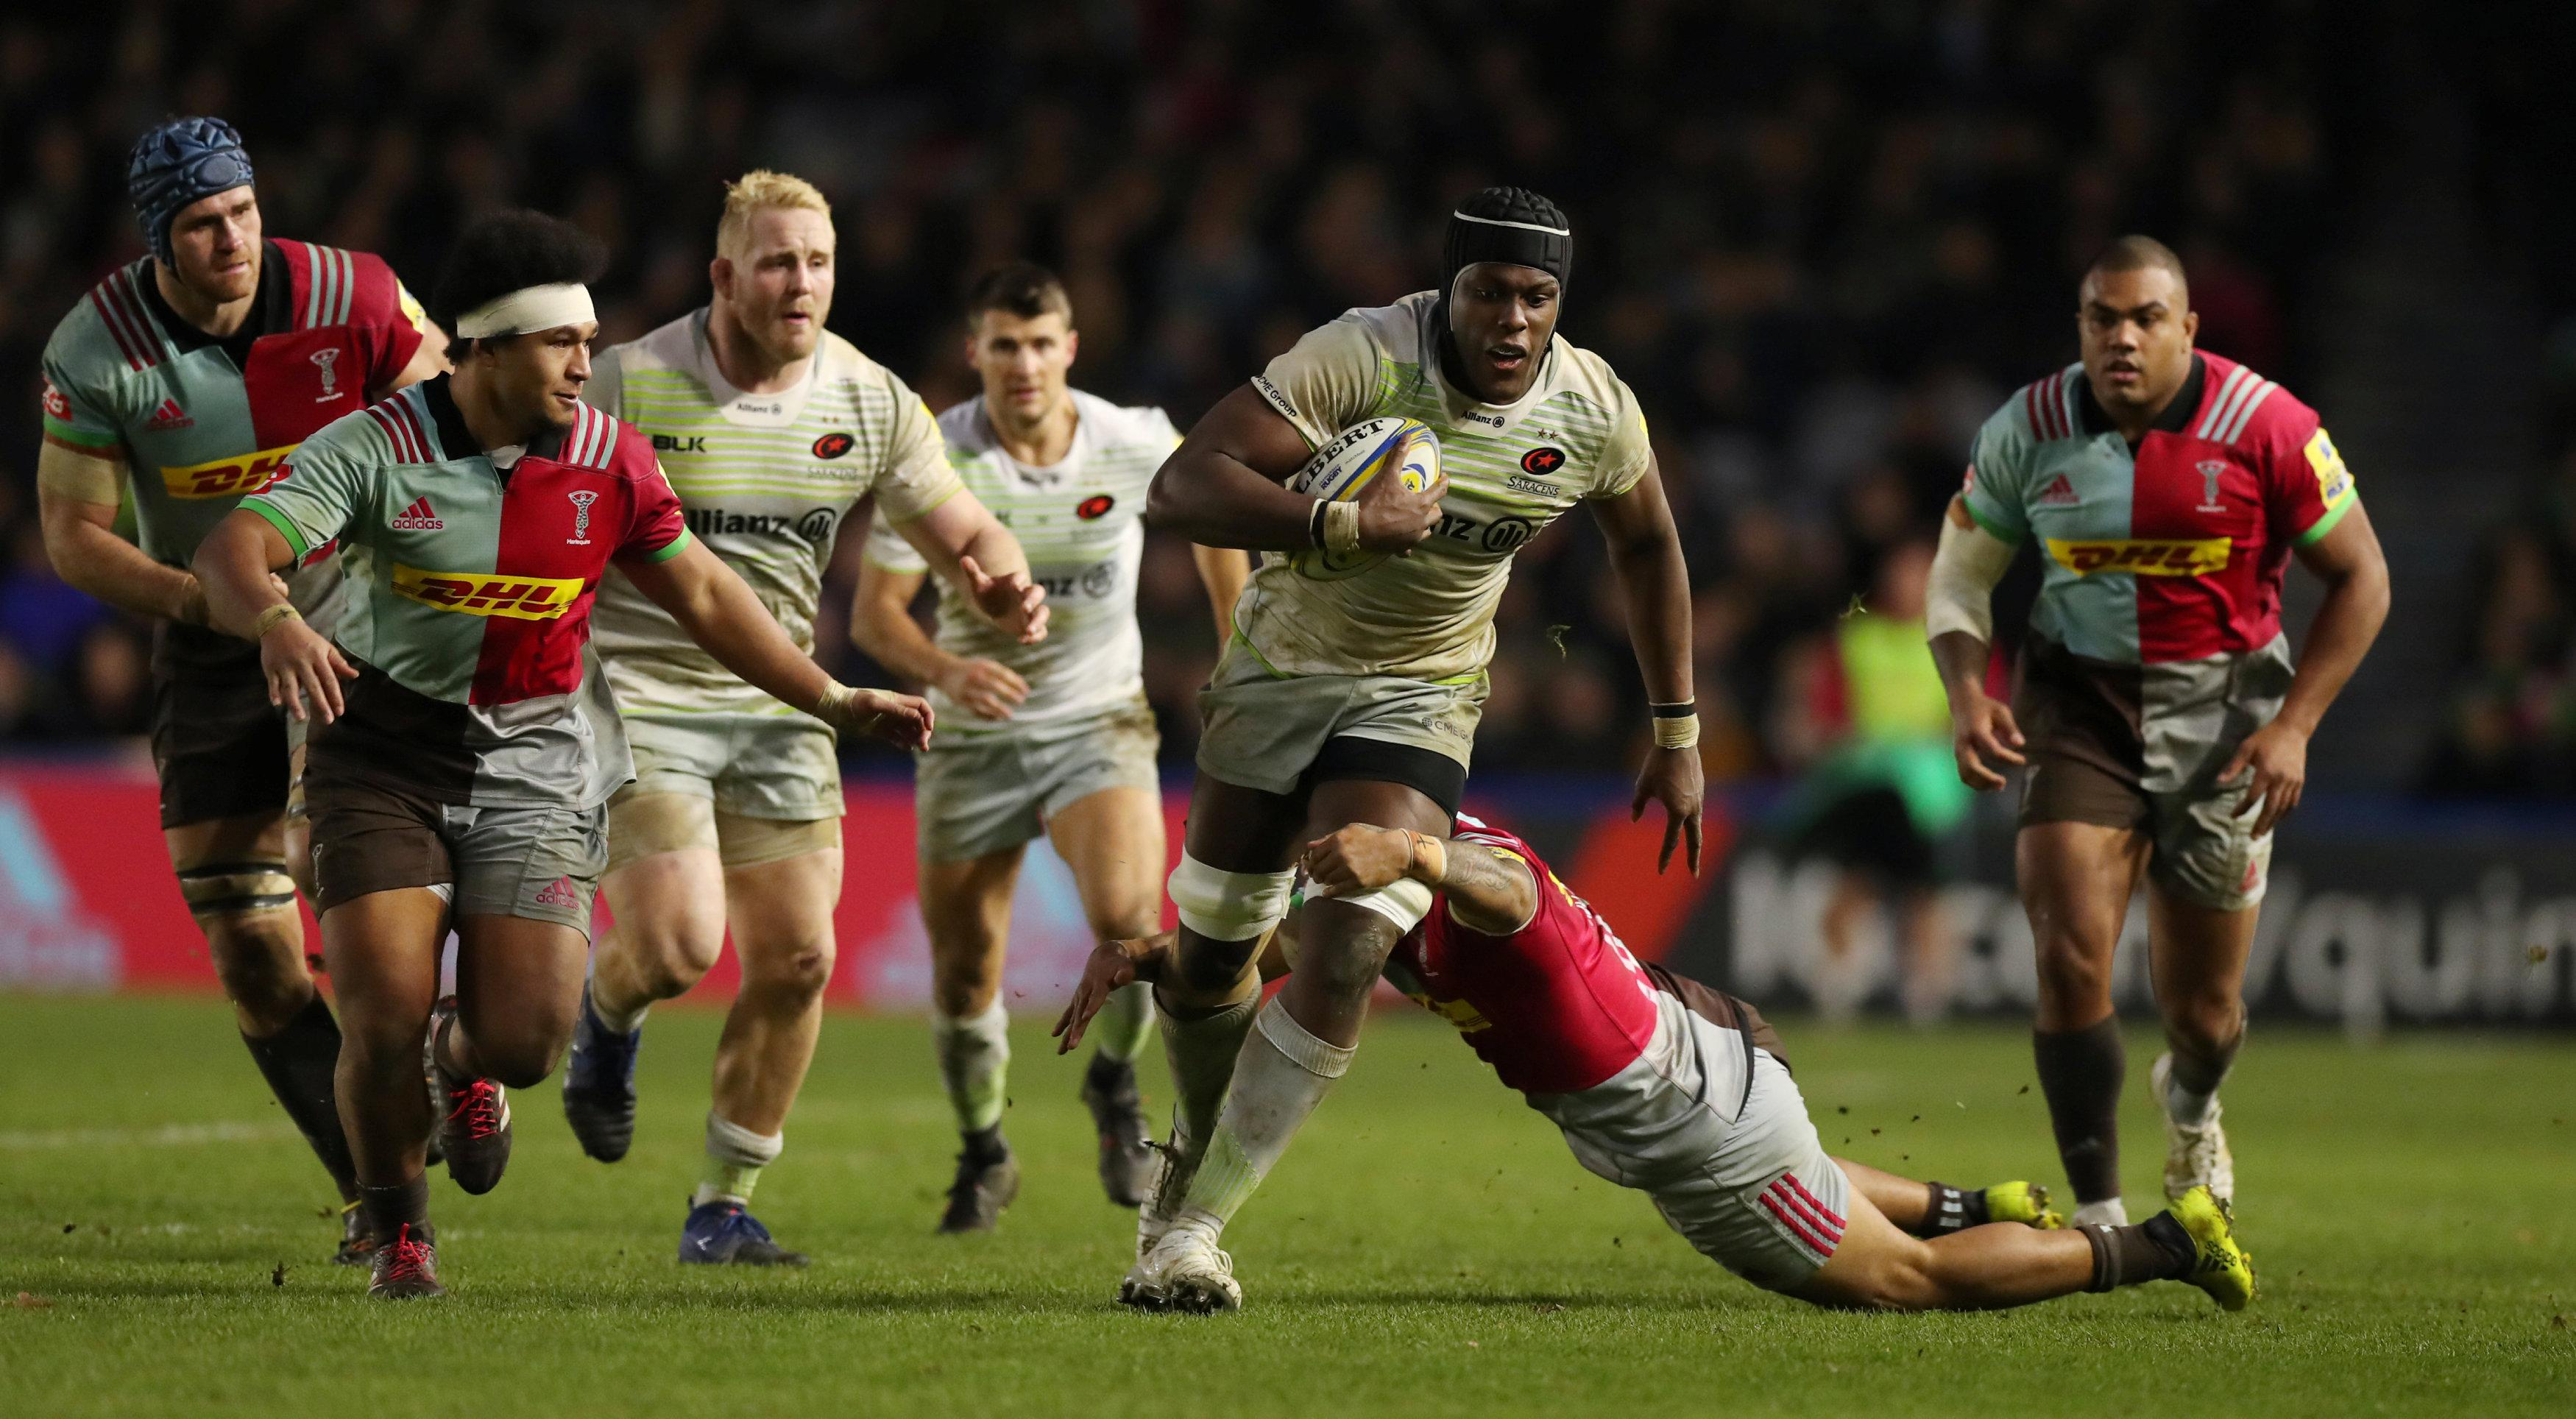 Saracens are looking to earn revenge after a one-point defeat at The Stoop earlier this season